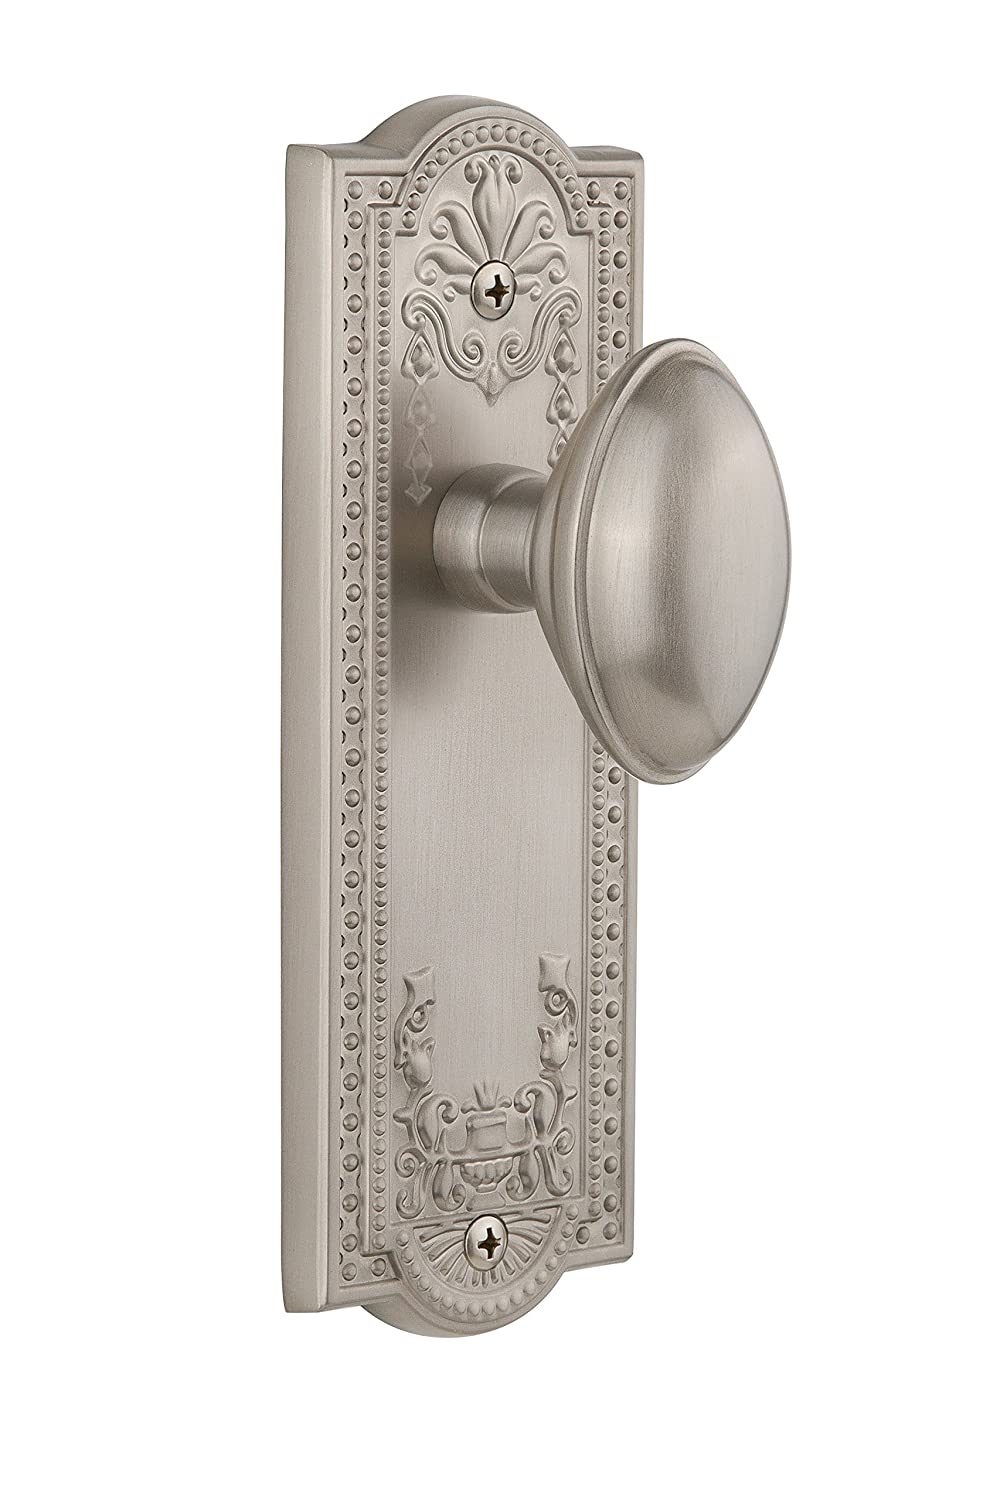 Grandeur Parthenon Plate with Eden Prairie Knob Satin Nickel Double Dummy